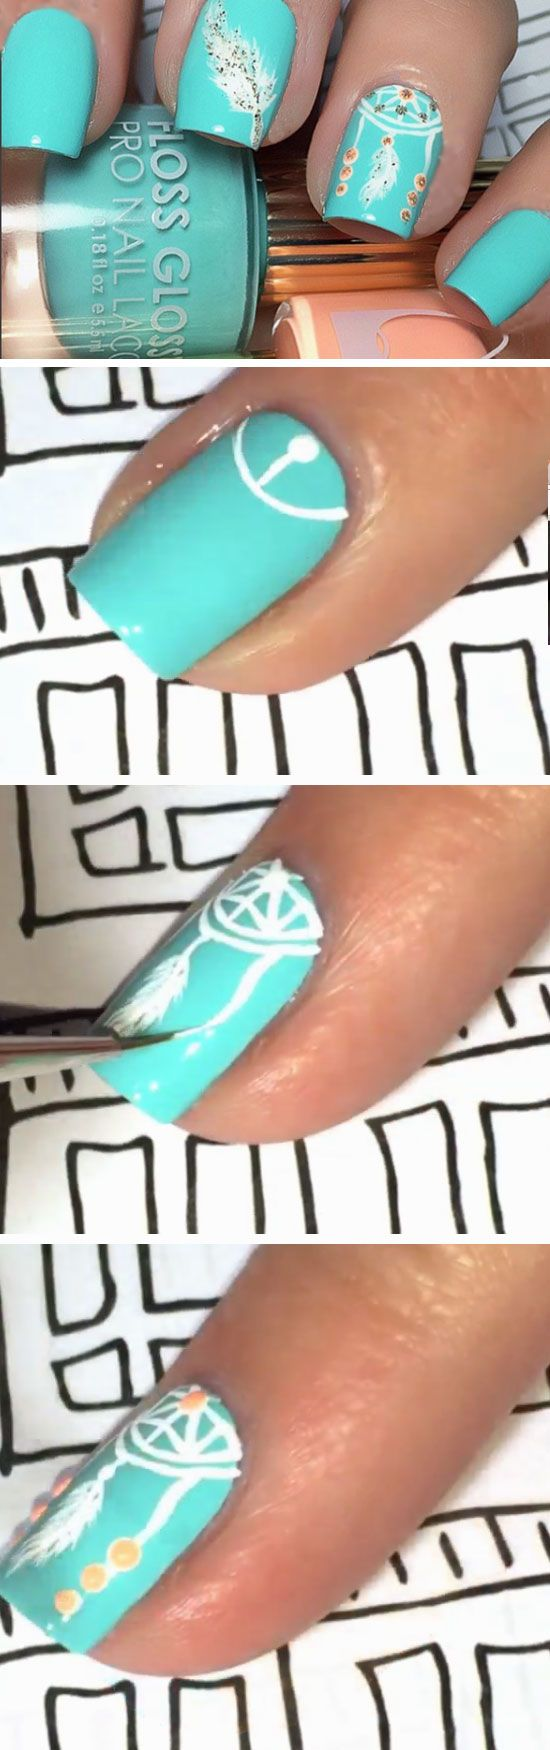 Dream Catcher | Click Pic for 22 Easy Spring Nail Designs for Short Nails 2016 | Awesome Nail Art Tutorials for Beginners